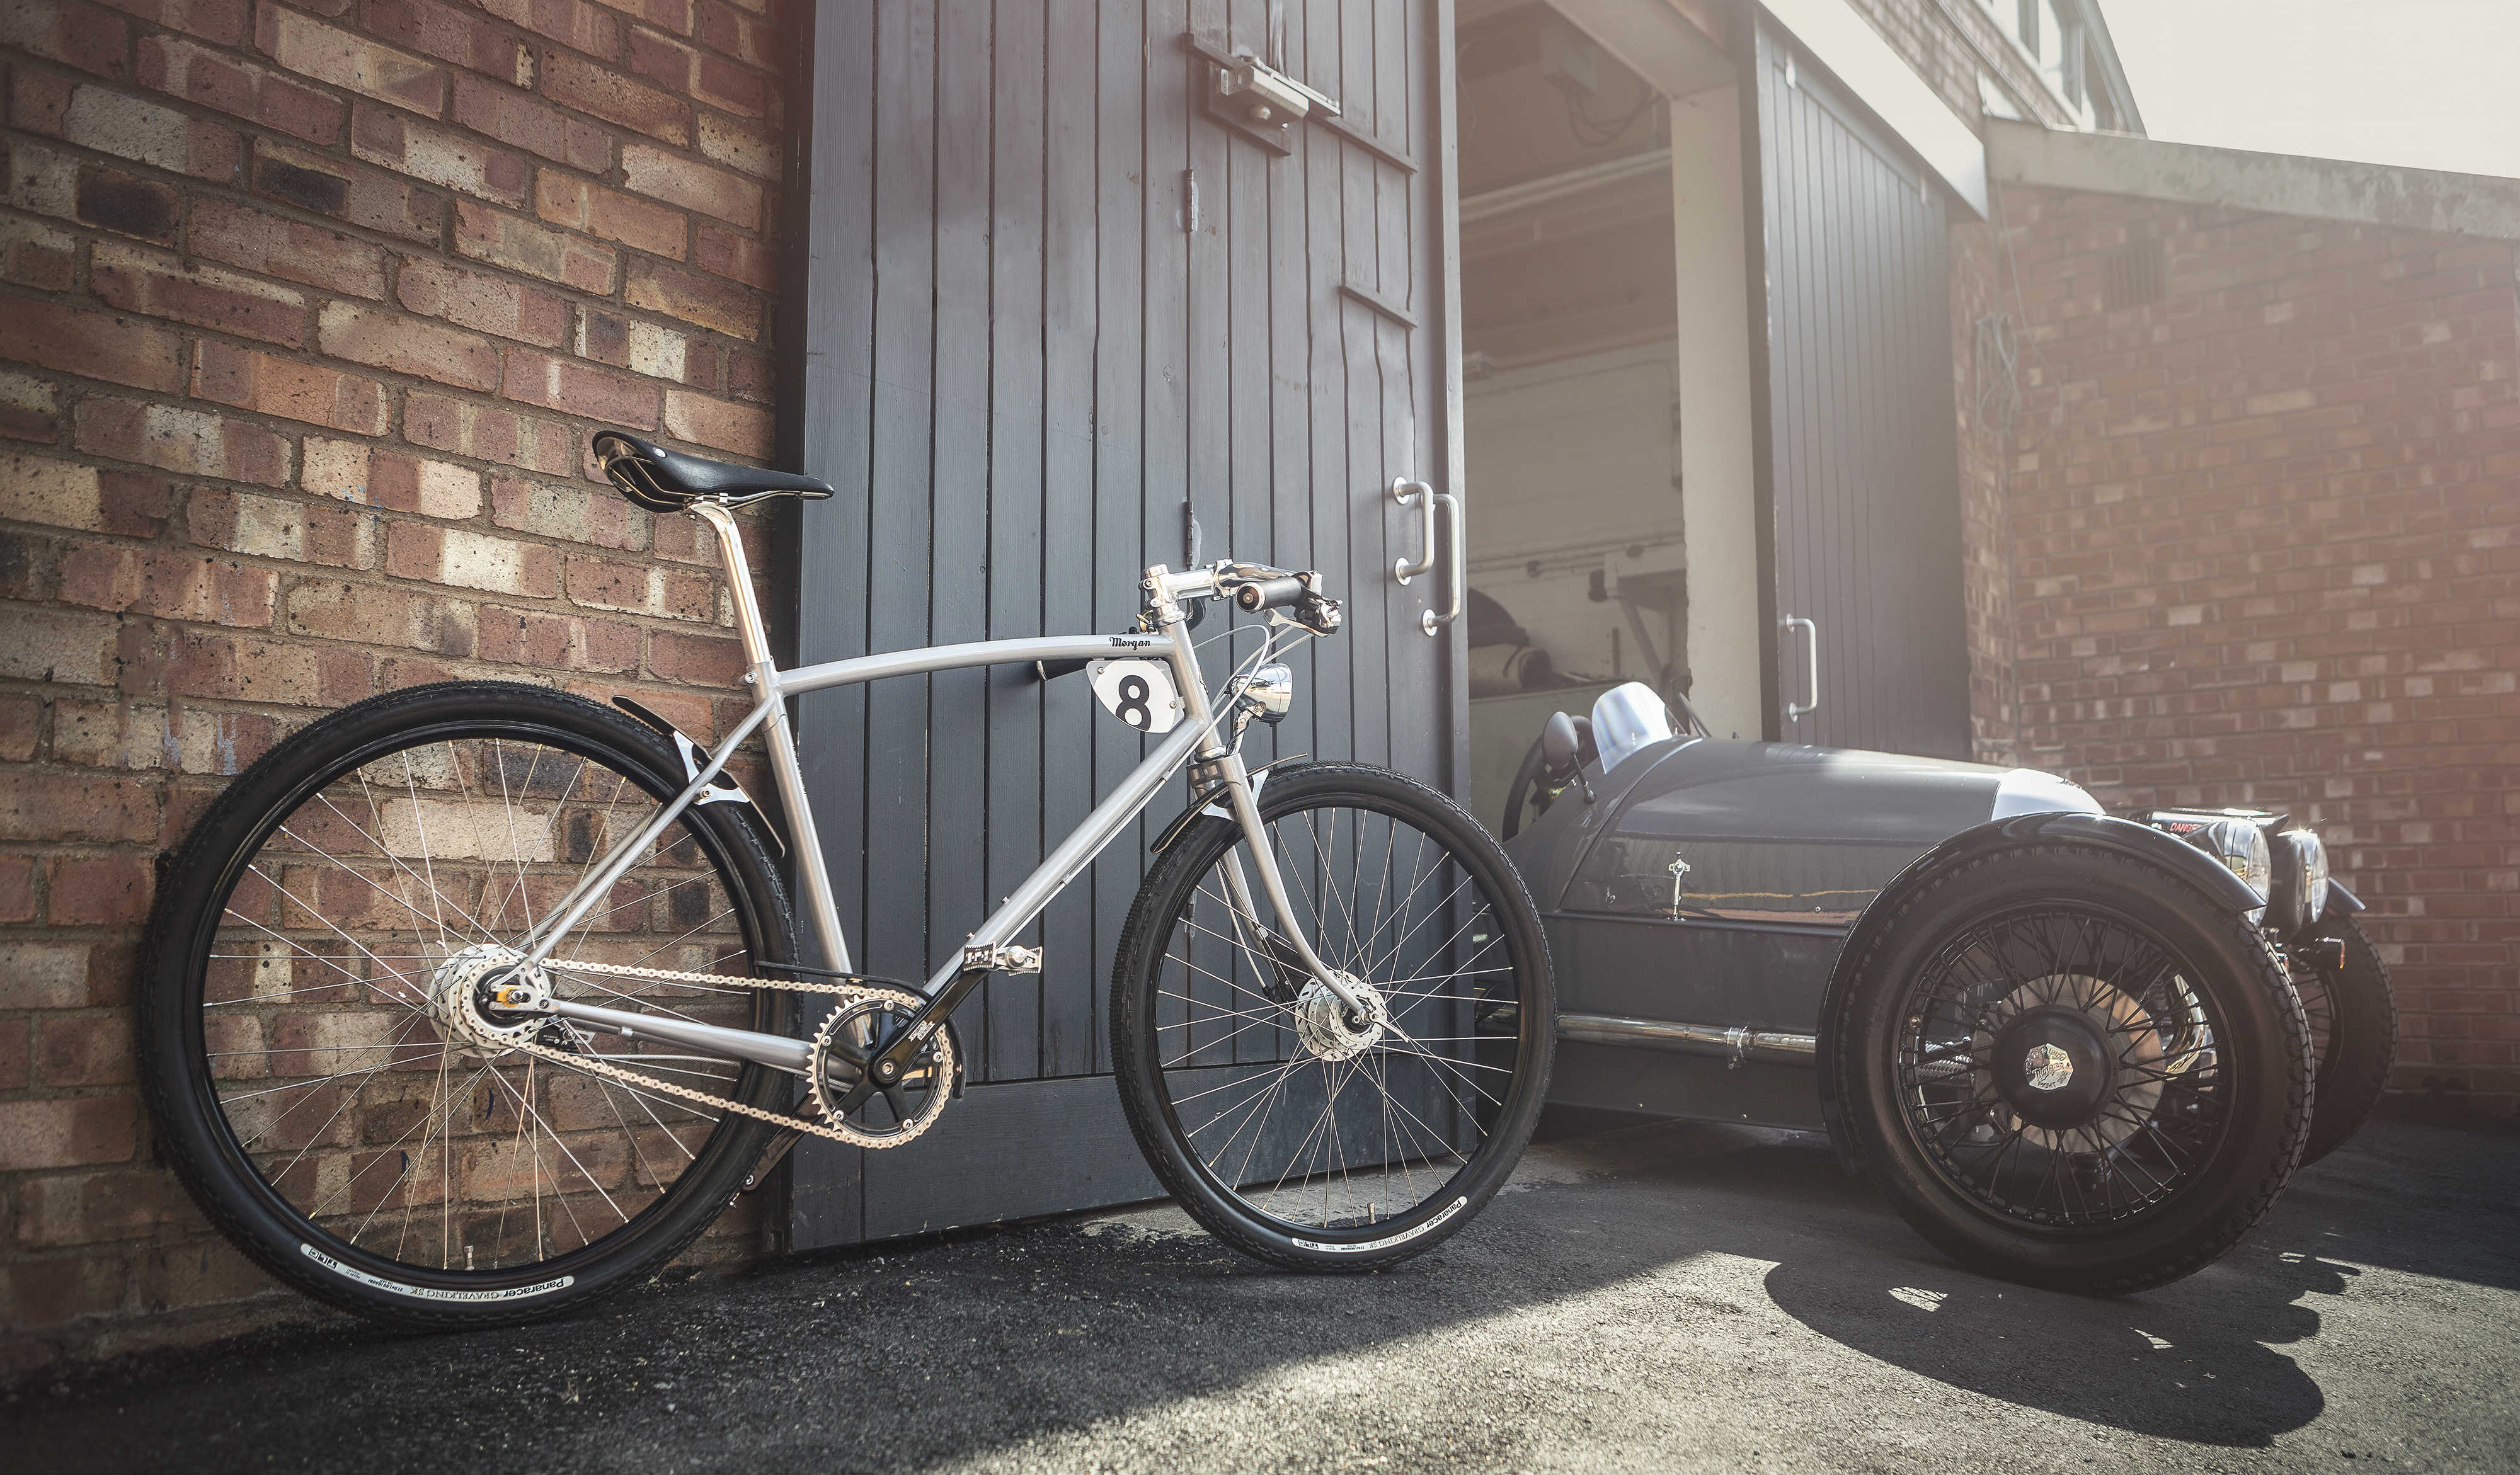 The collaborative range will start with two jointly developed bicycles, known individually as the Pashley-Morgan 3 and the Pashley-Morgan 8, each one handmade at Pashley's Stratford-upon-Avon factory and featuring an extensive list of high-quality components.